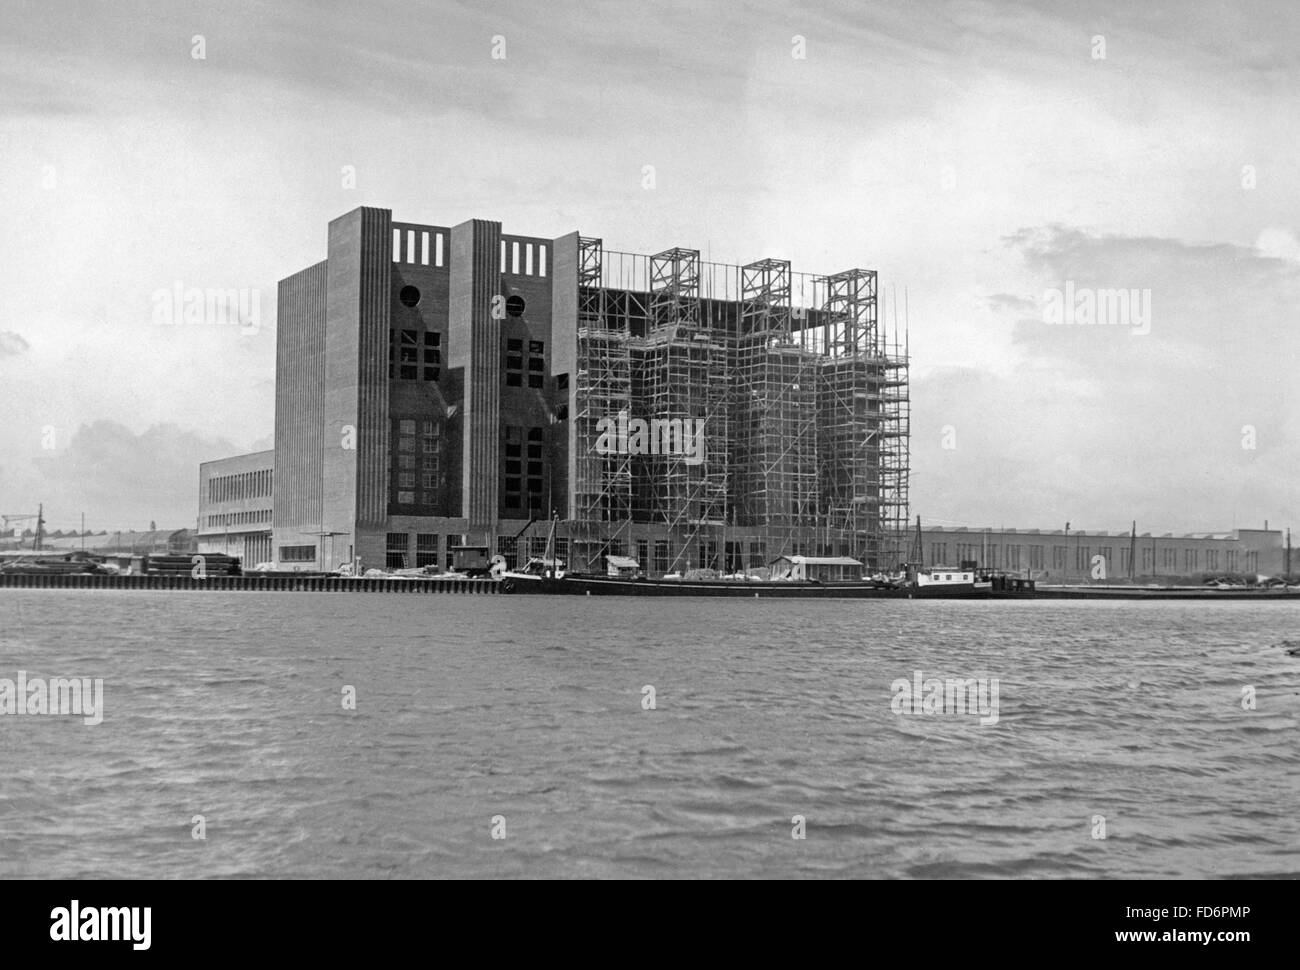 Automobile industry: VW plant under construction - power plant of the VW plant, 1939 Stock Photo